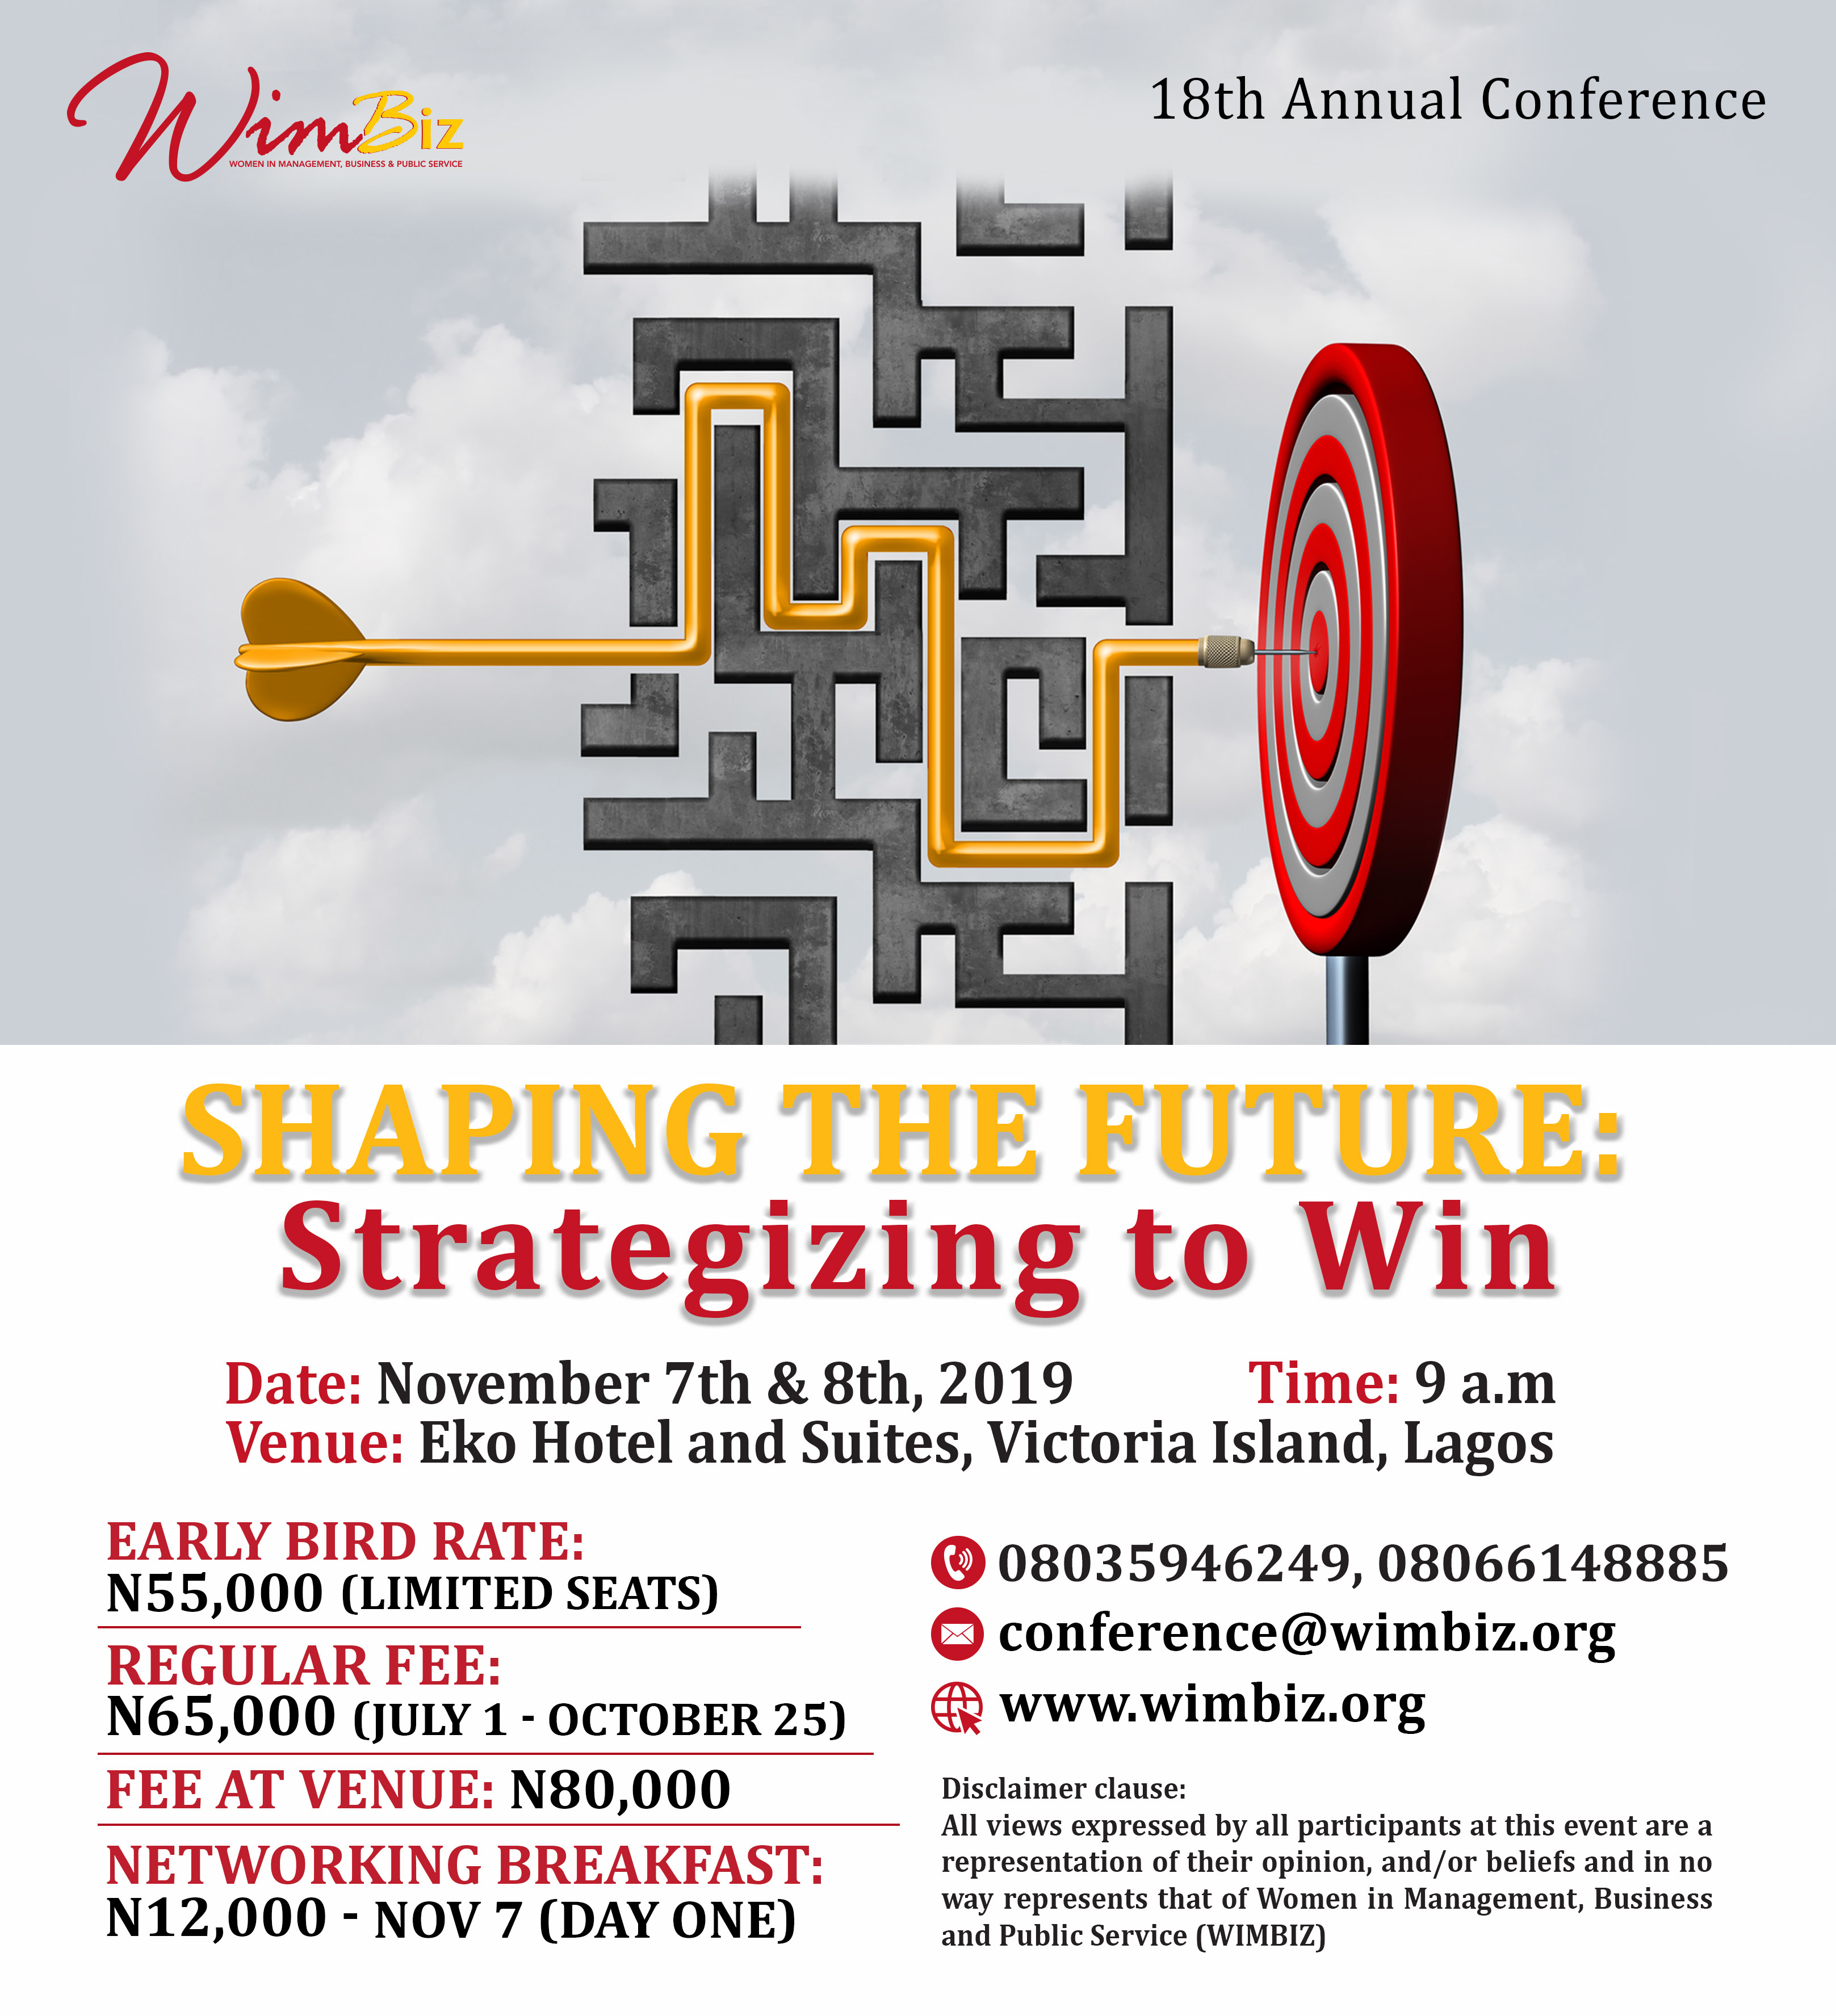 Here are 2 Reasons Why You should Attend the WIMBIZ Annual Conference 2019 | November 7th & 8th